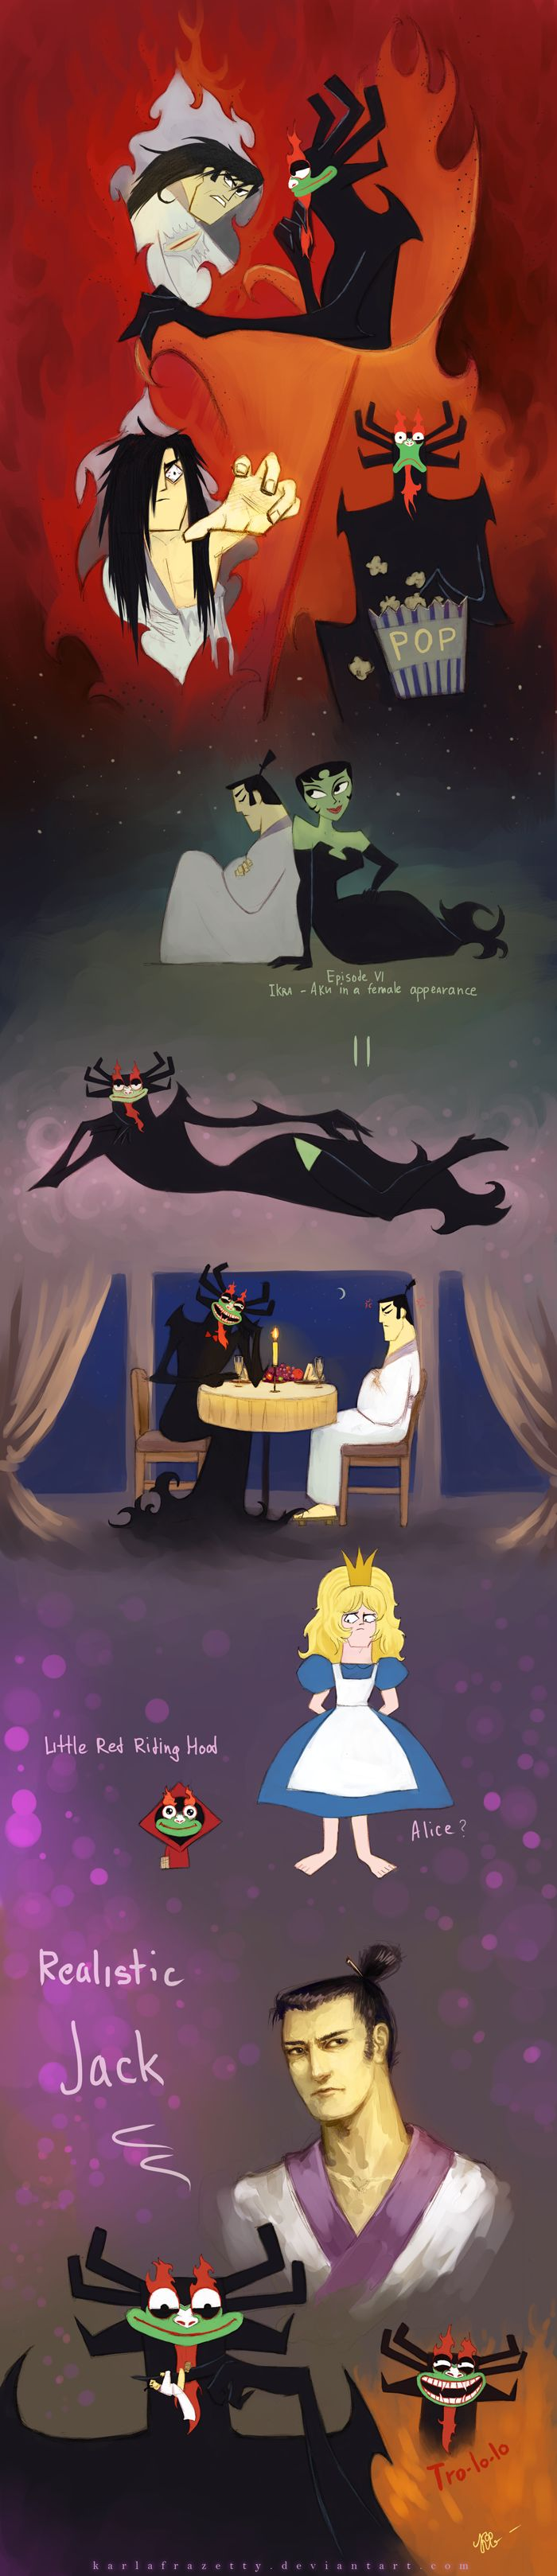 Samurai Jack and Aku by KarlaFrazetty.deviantart.com on @DeviantArt